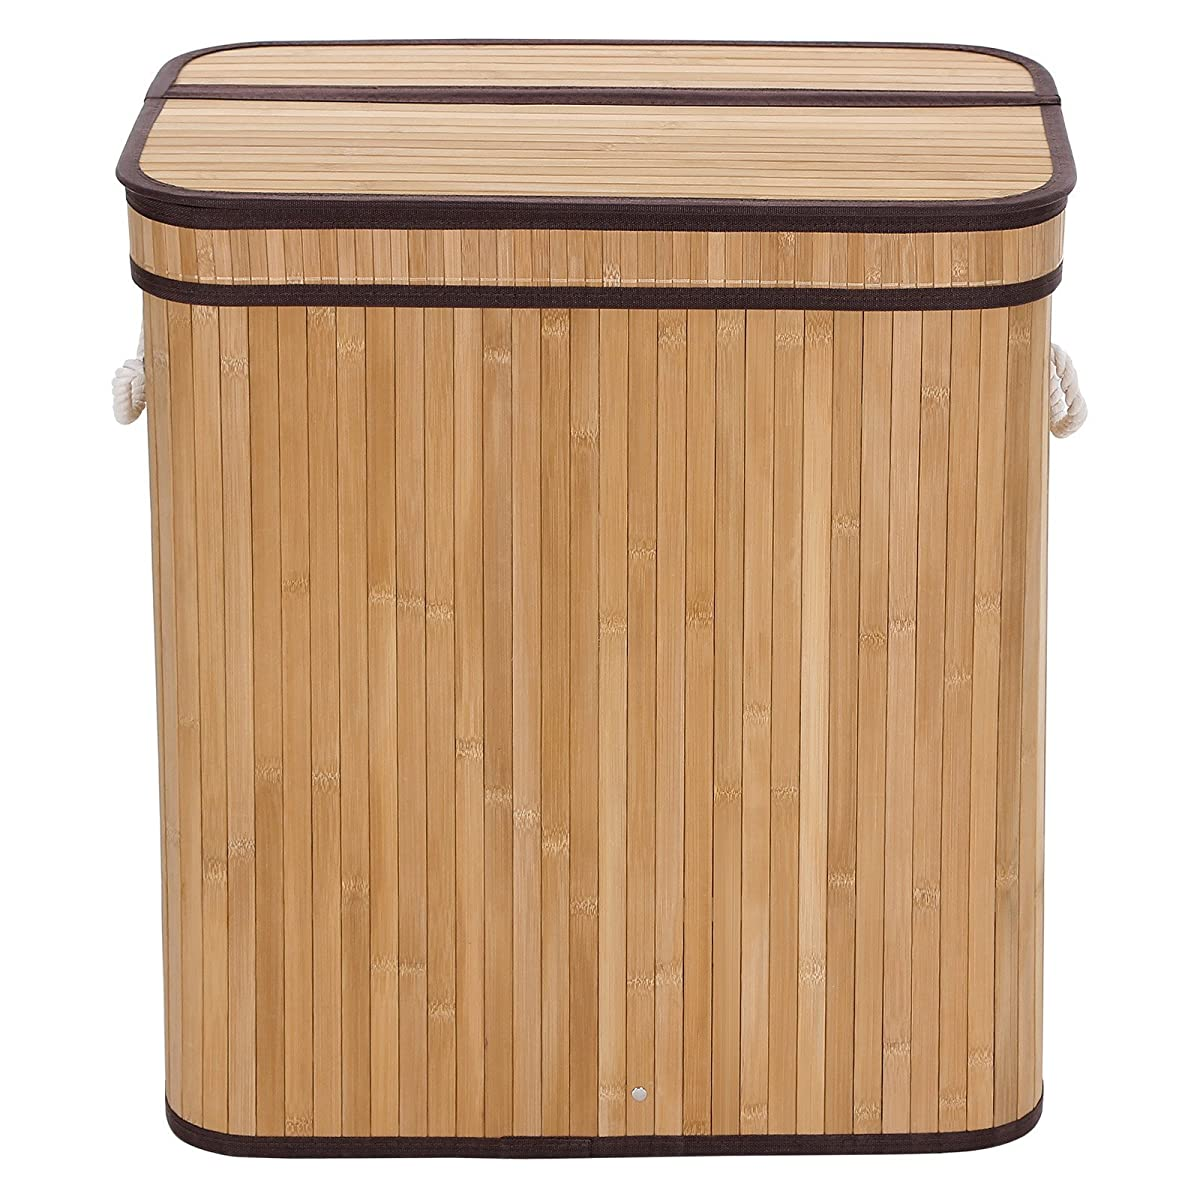 SONGMICS Laundry Hamper Basket Double Clothes Storage Natural Bamboo Color ULCB64Y